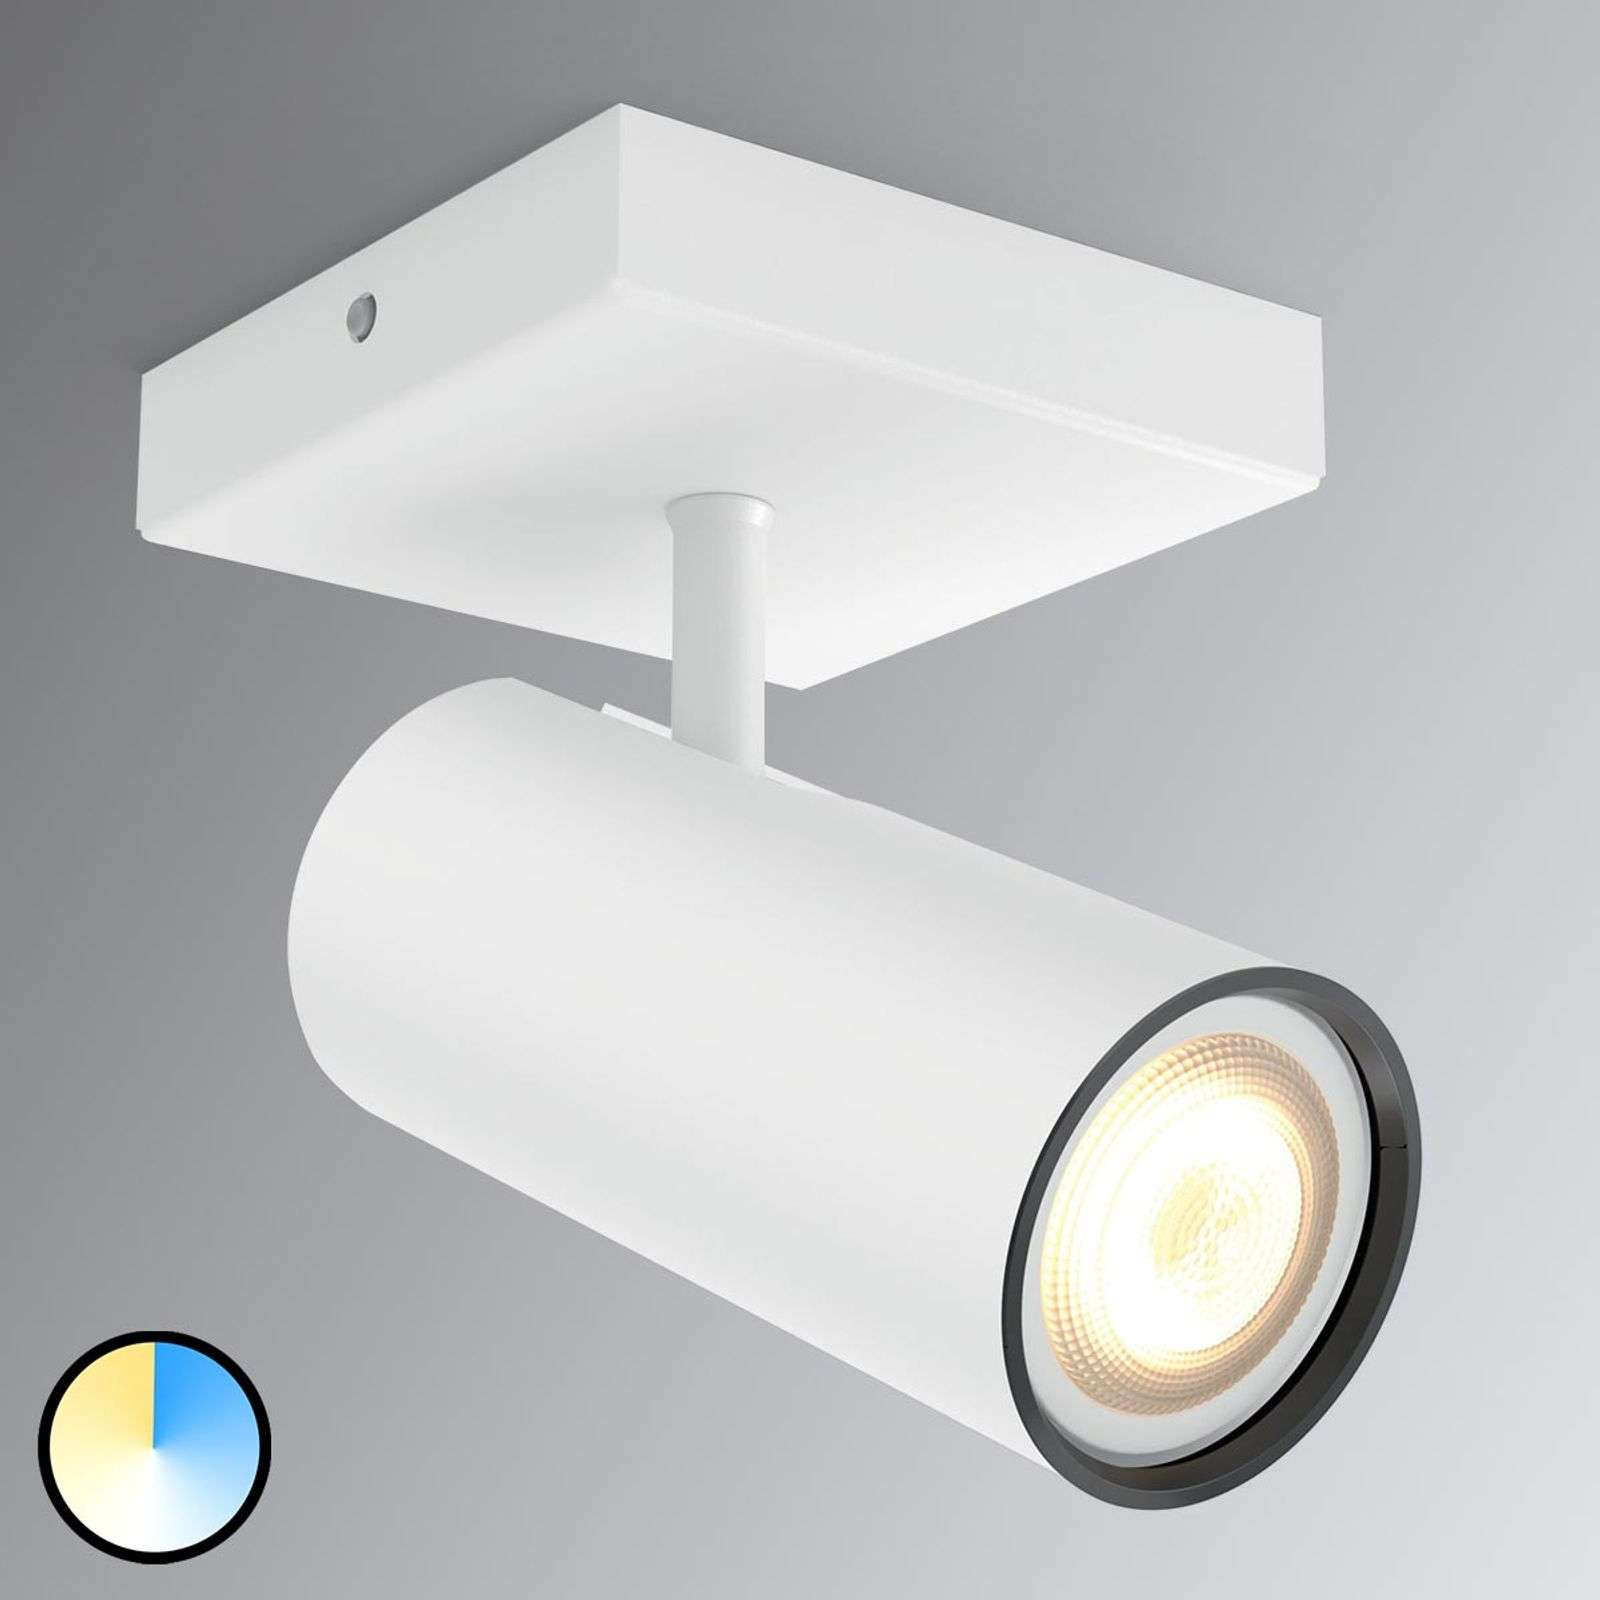 Spot LED Philips Hue Buratto con dimmer